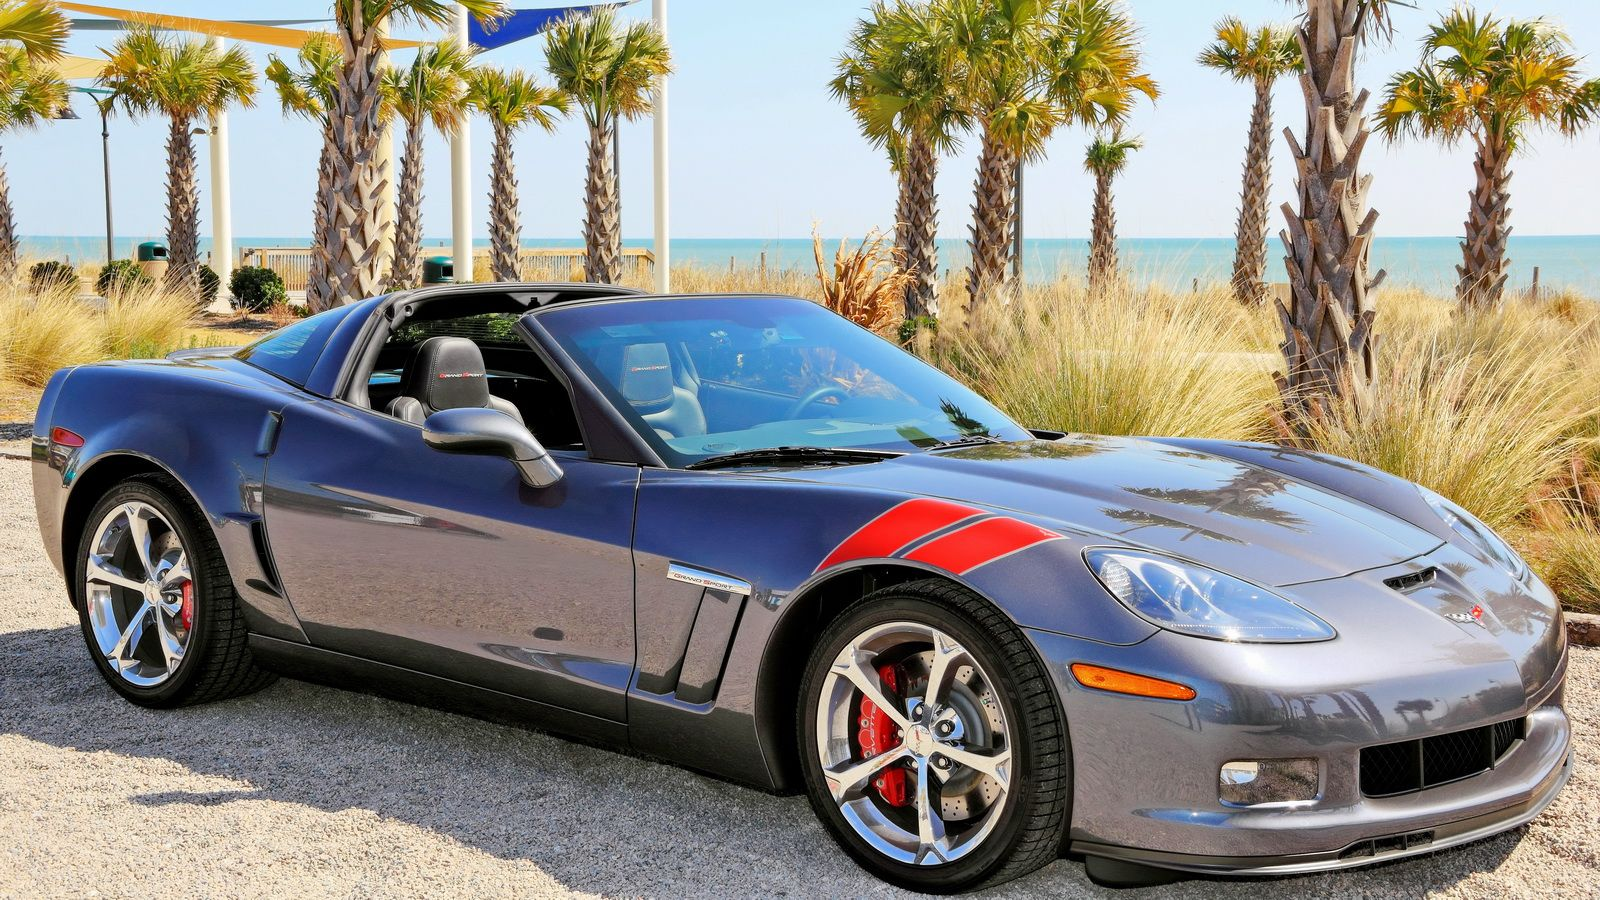 Chevrolet Corvette (C6) Grand Sport (With images)